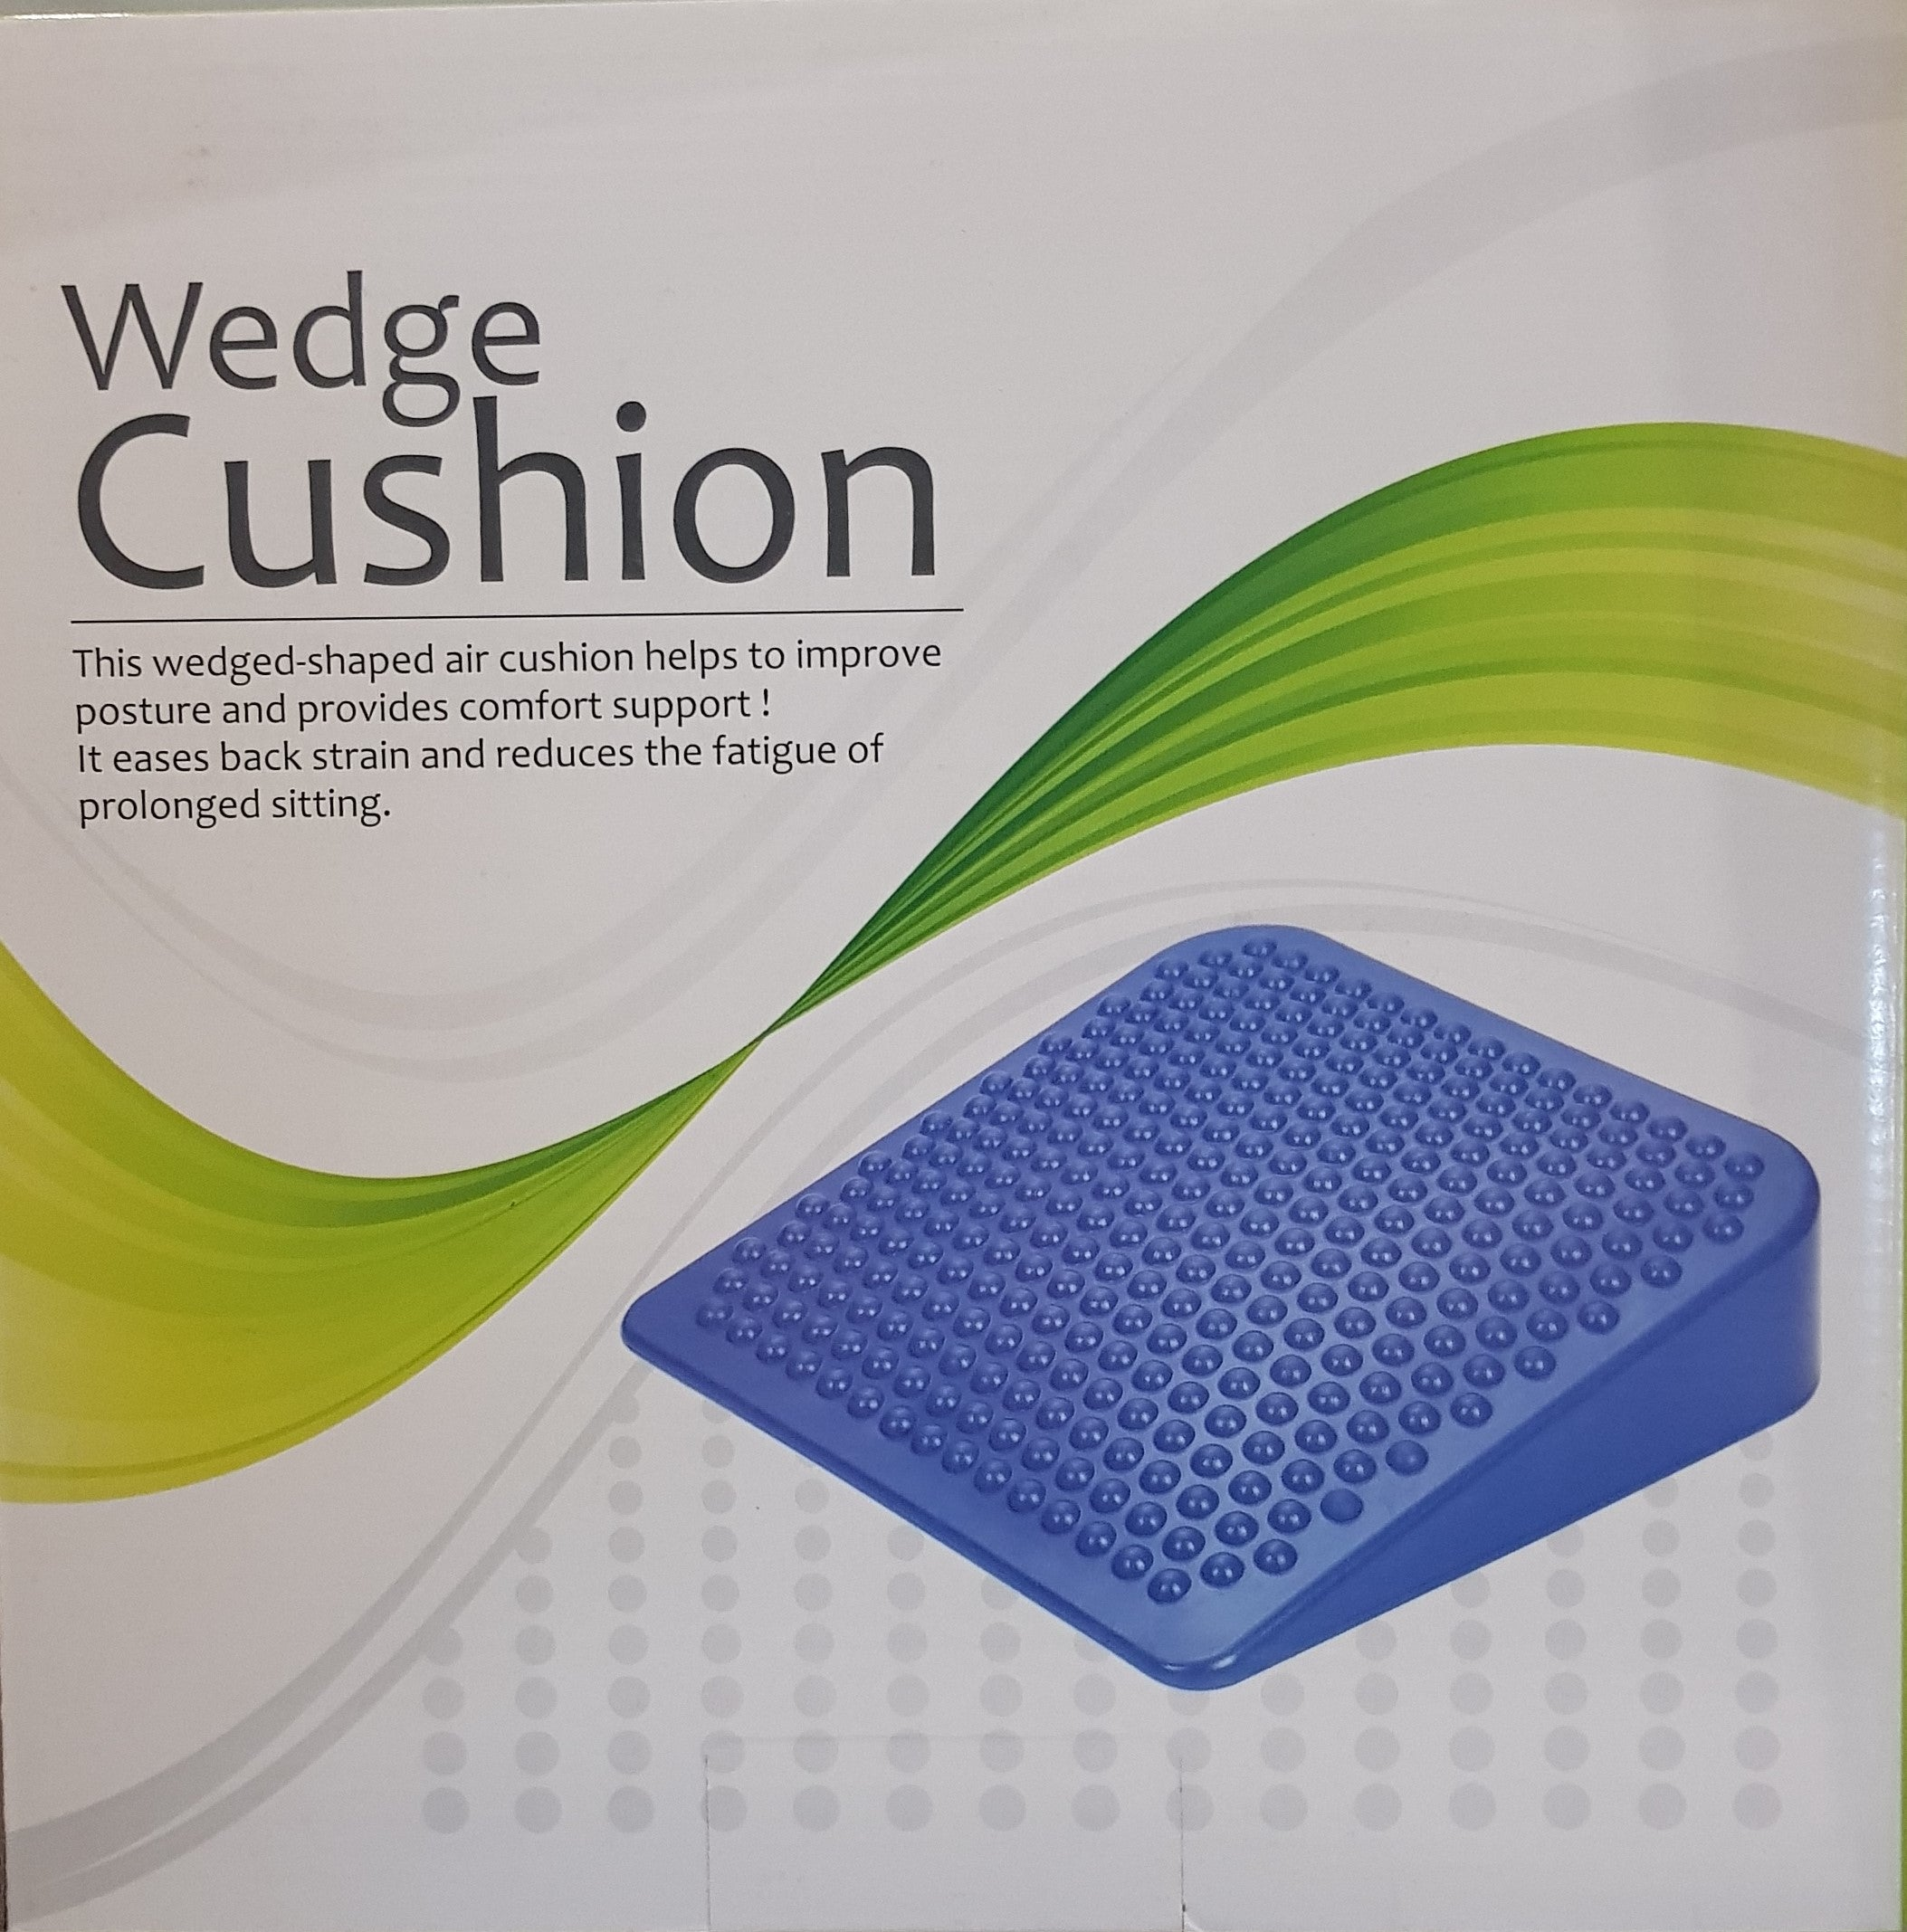 Wedge Cushion Image